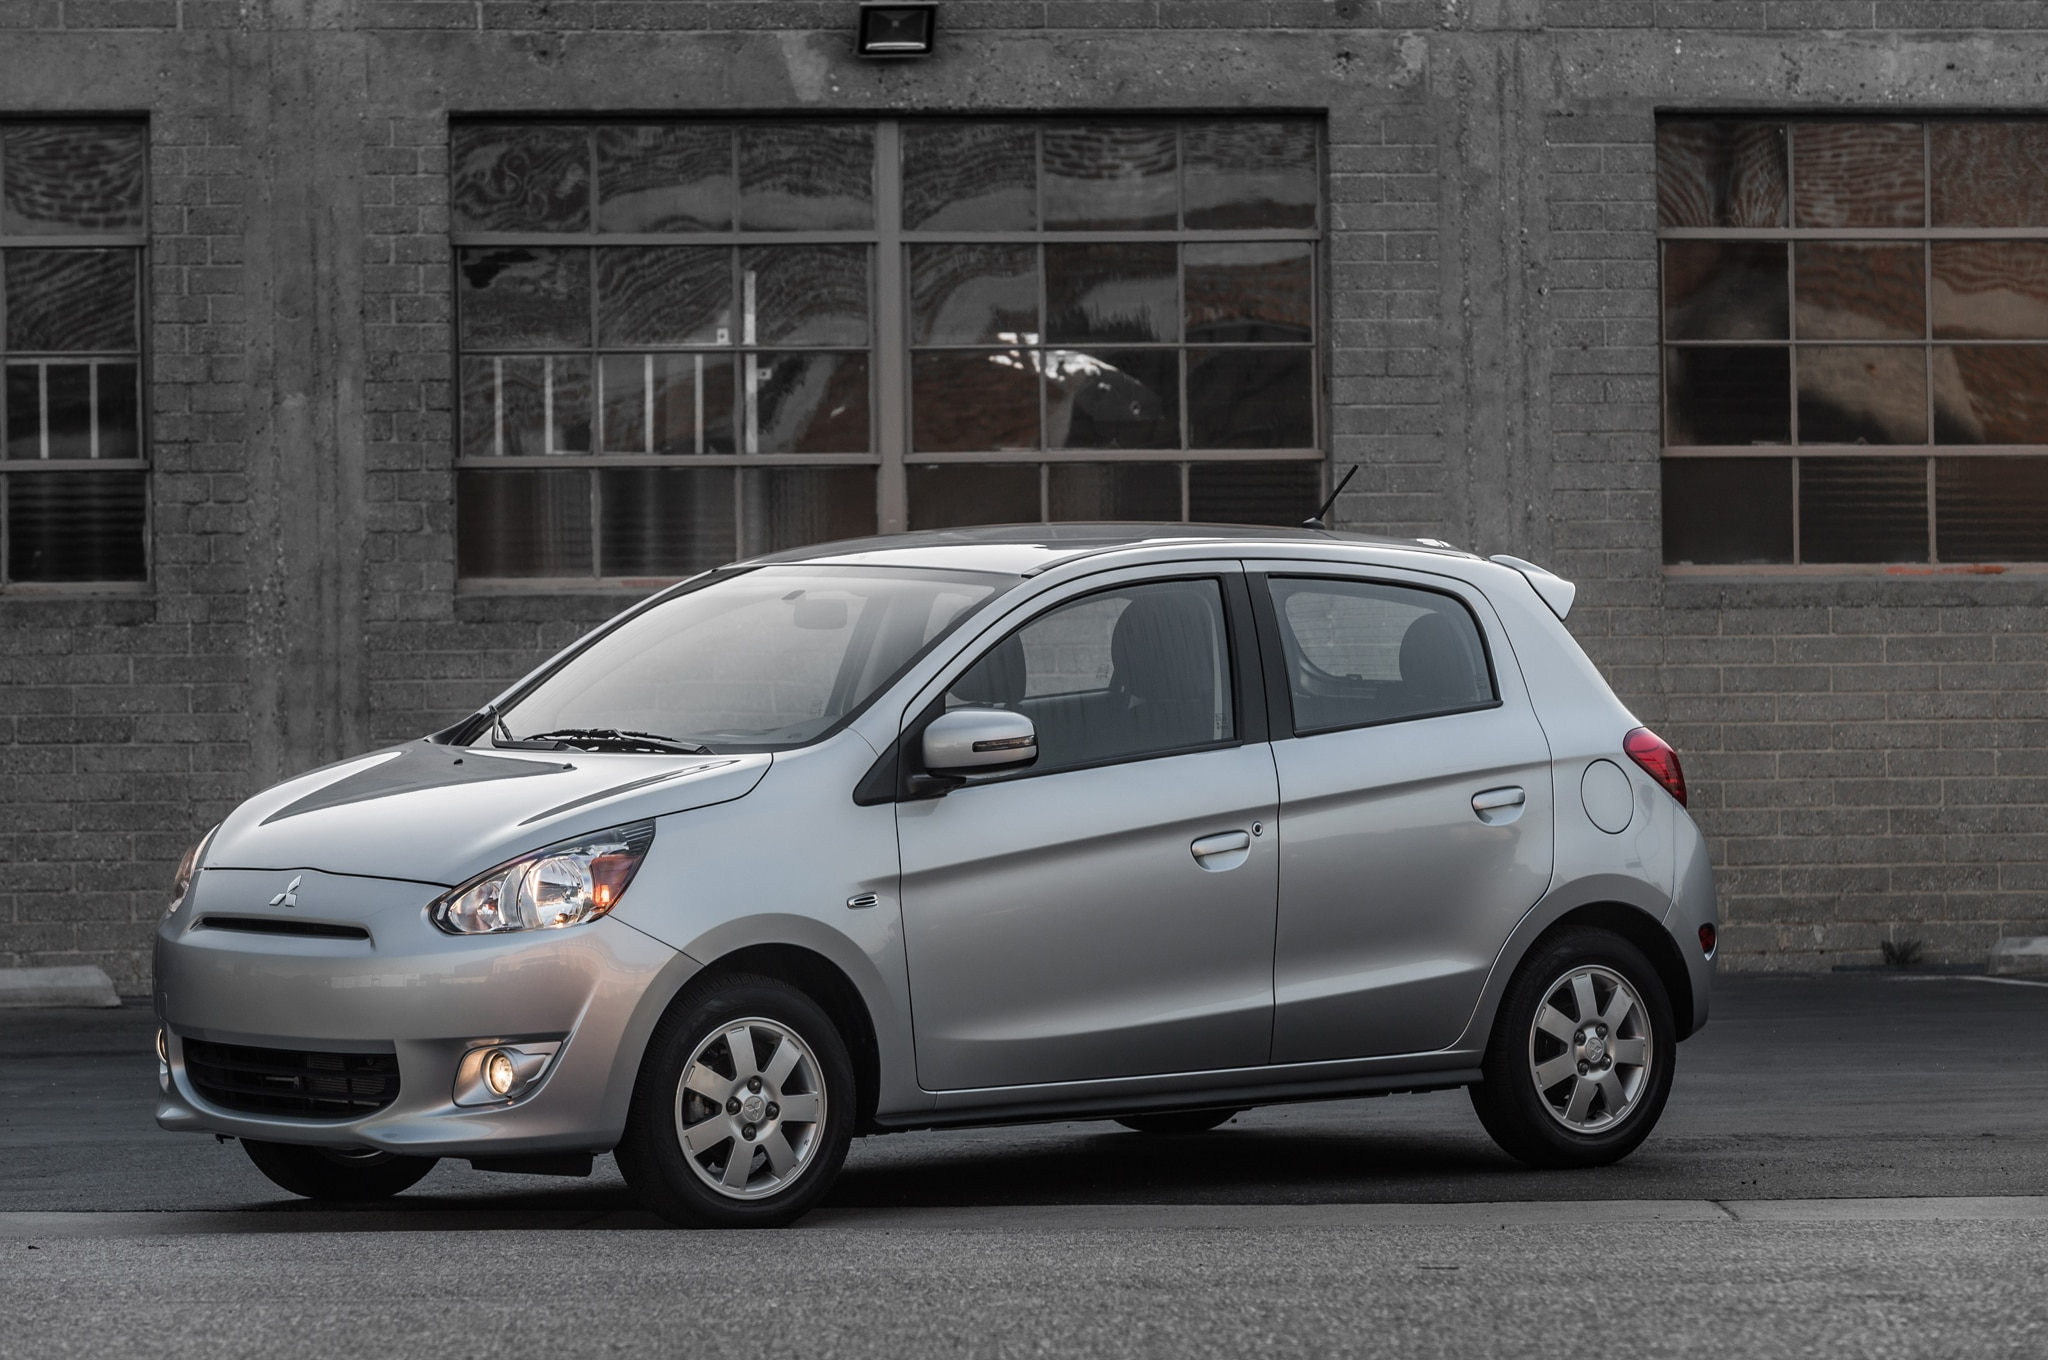 Mitsubishi Mirage G4 Sedan, Refreshed Lineup Confirmed for U.S.